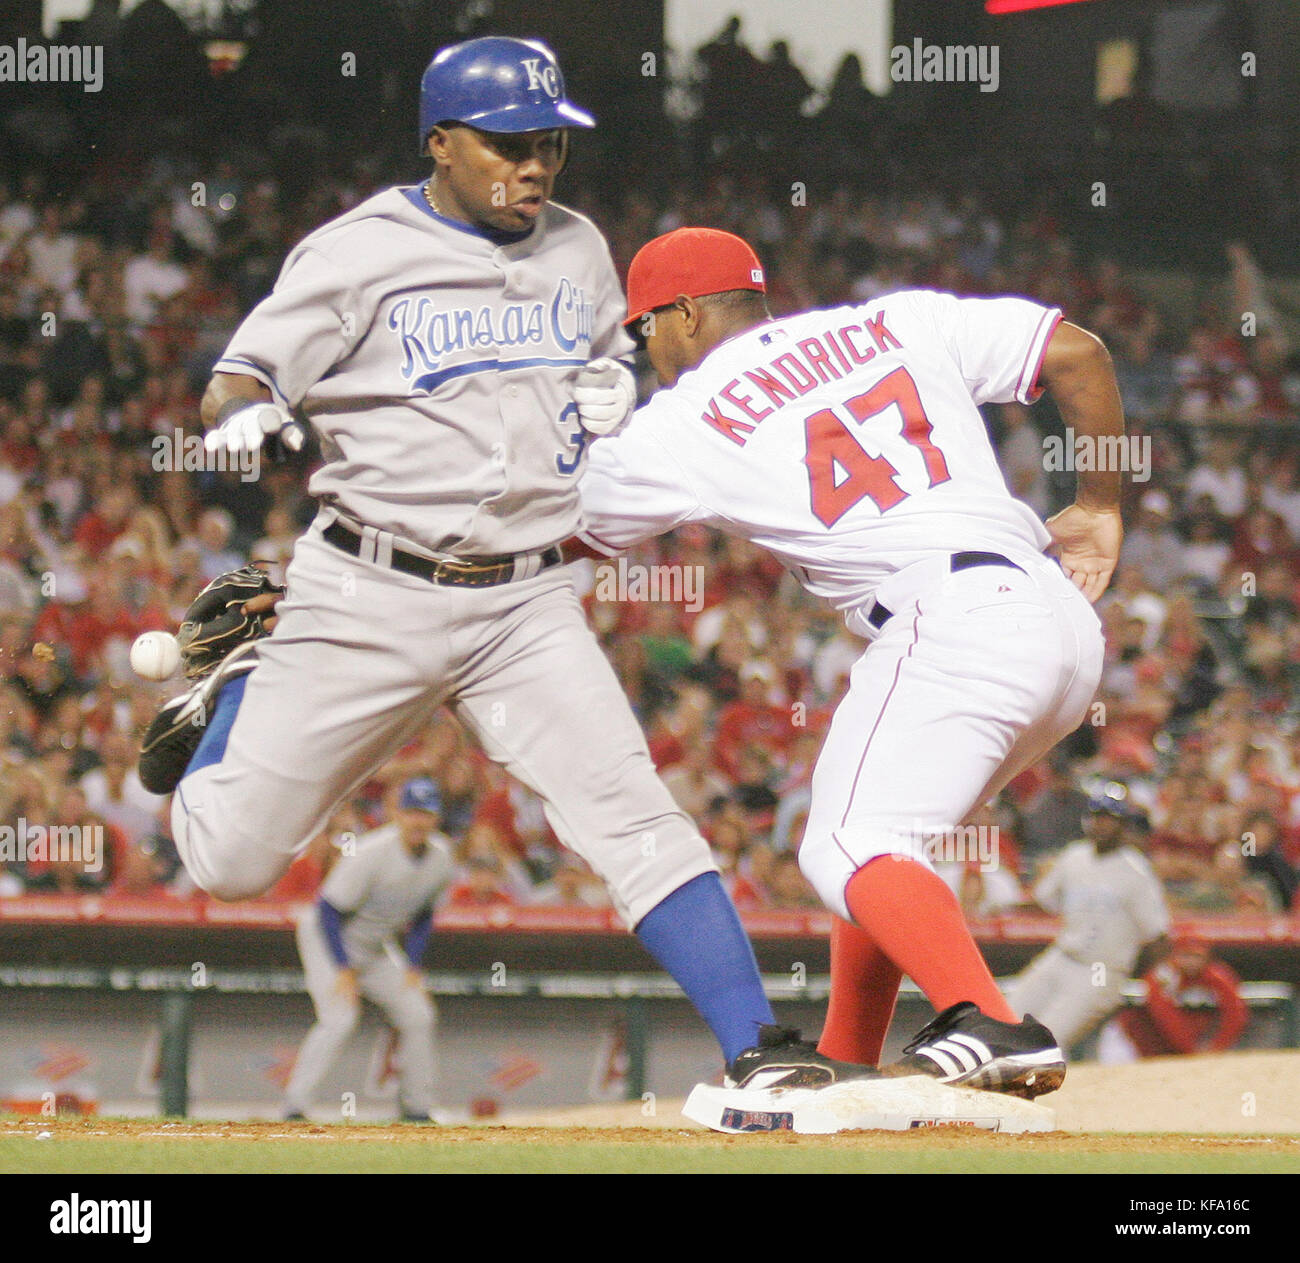 Los Angeles Angels second baseman Howie Kendrick, right, can't field an errant throw by third baseman Chone - Stock Image